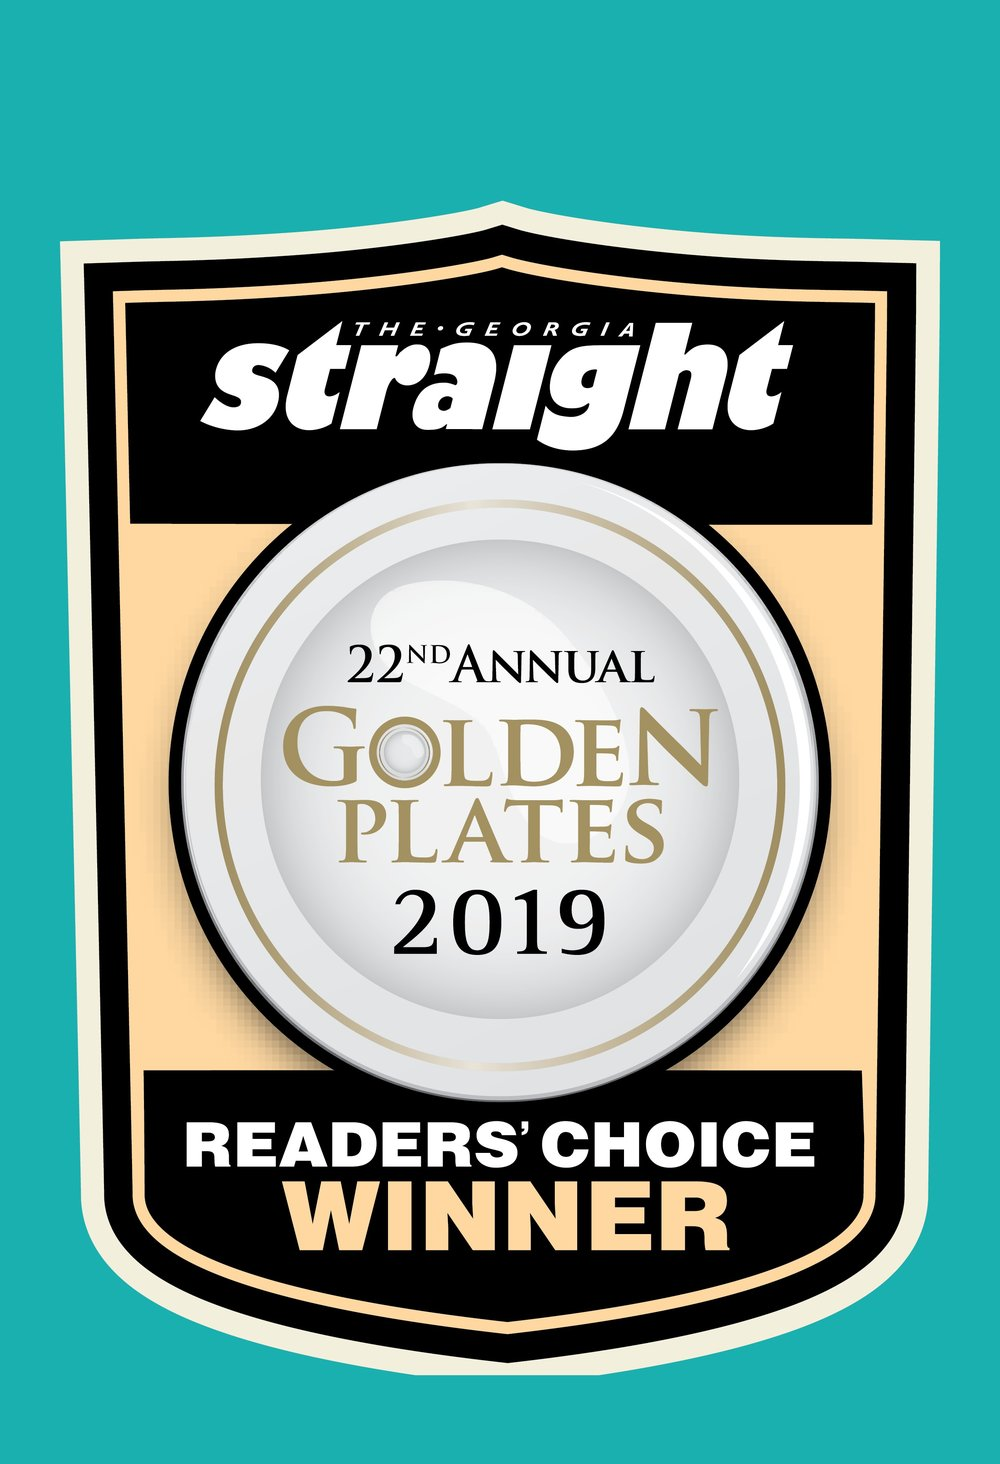 THE GEORGIA STRAIGHT Golden Plates 2019 READER's choice awards: AND the winners are… - March 13, 2019The readers (eaters) have voted and we're thrilled to see so many of our amazing culinary clients on the list for The Georgia Straight's #GoldenPlates2019 Reader's Choice Awards.Congratulations to Ask for Luigi (Best Italian), Juke Fried Chicken, Ribs and Cocktail Bar (Best Chicken & Best West End), Medina Café (Best Brunch), Pourhouse Vancouver Restaurant (Best Restaurant for a Stiff Drink), St Lawrence Restaurant (Best French), Tacofino Vancouver (Best Food Truck & Best Mexican), UVA Wine & Cocktail Bar (Best Wine Bar) and all the winners at this year's competition.And a special shout out to Ricardo Valverde from Ancora Waterfront Dining and Patio, who was selected Chef of the Year by his industry peers in the publication's insiders survey.